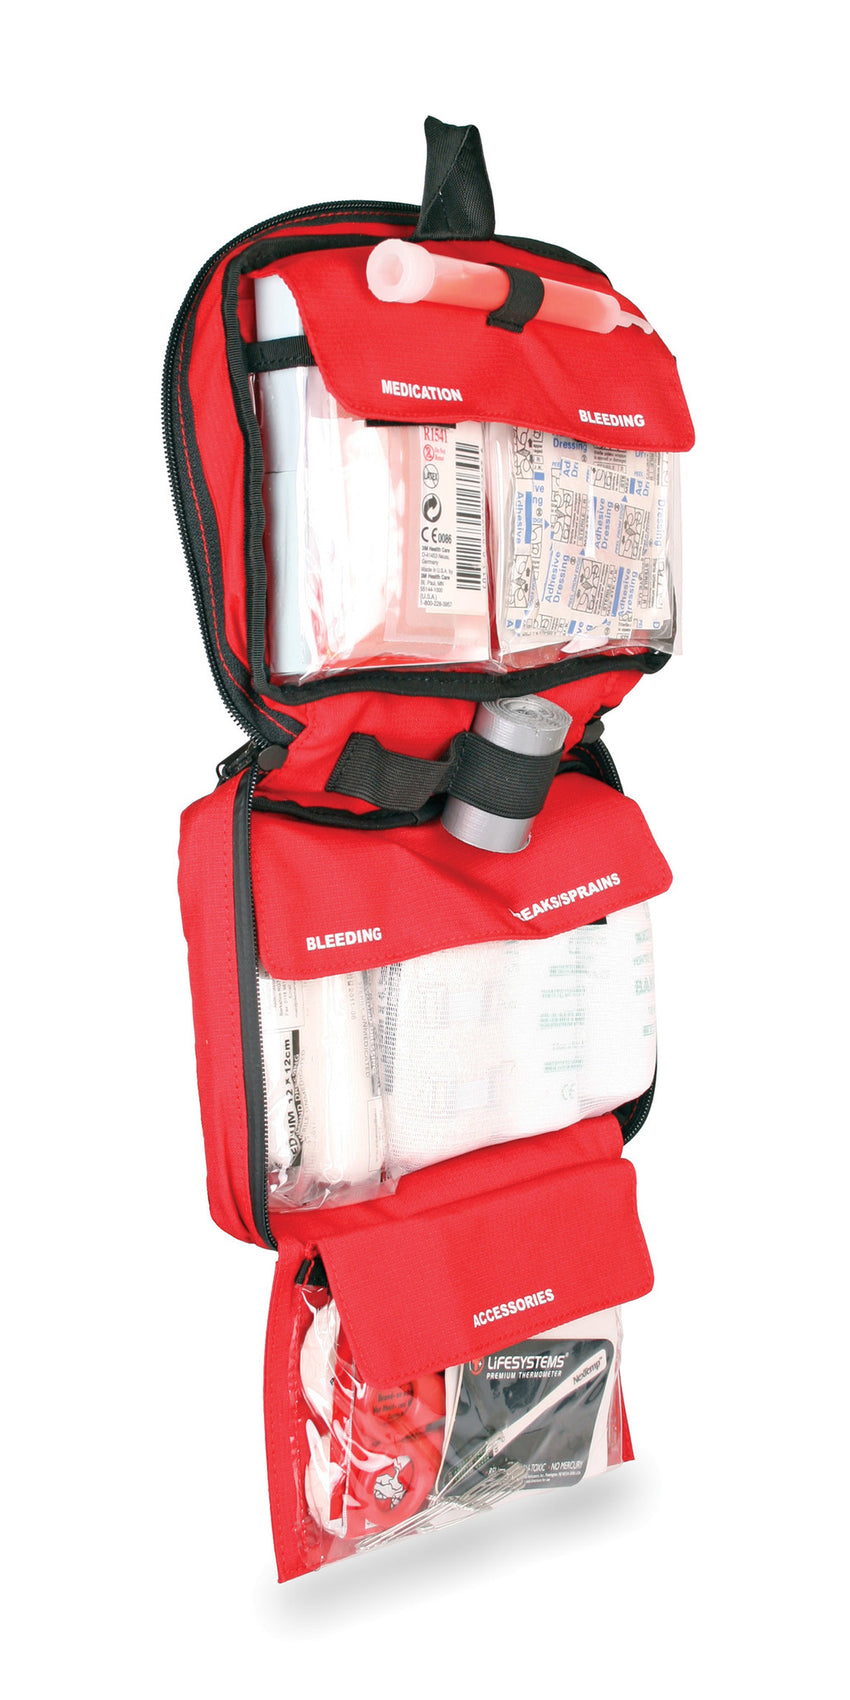 Lifesystems Mountain First Aid kit organisation